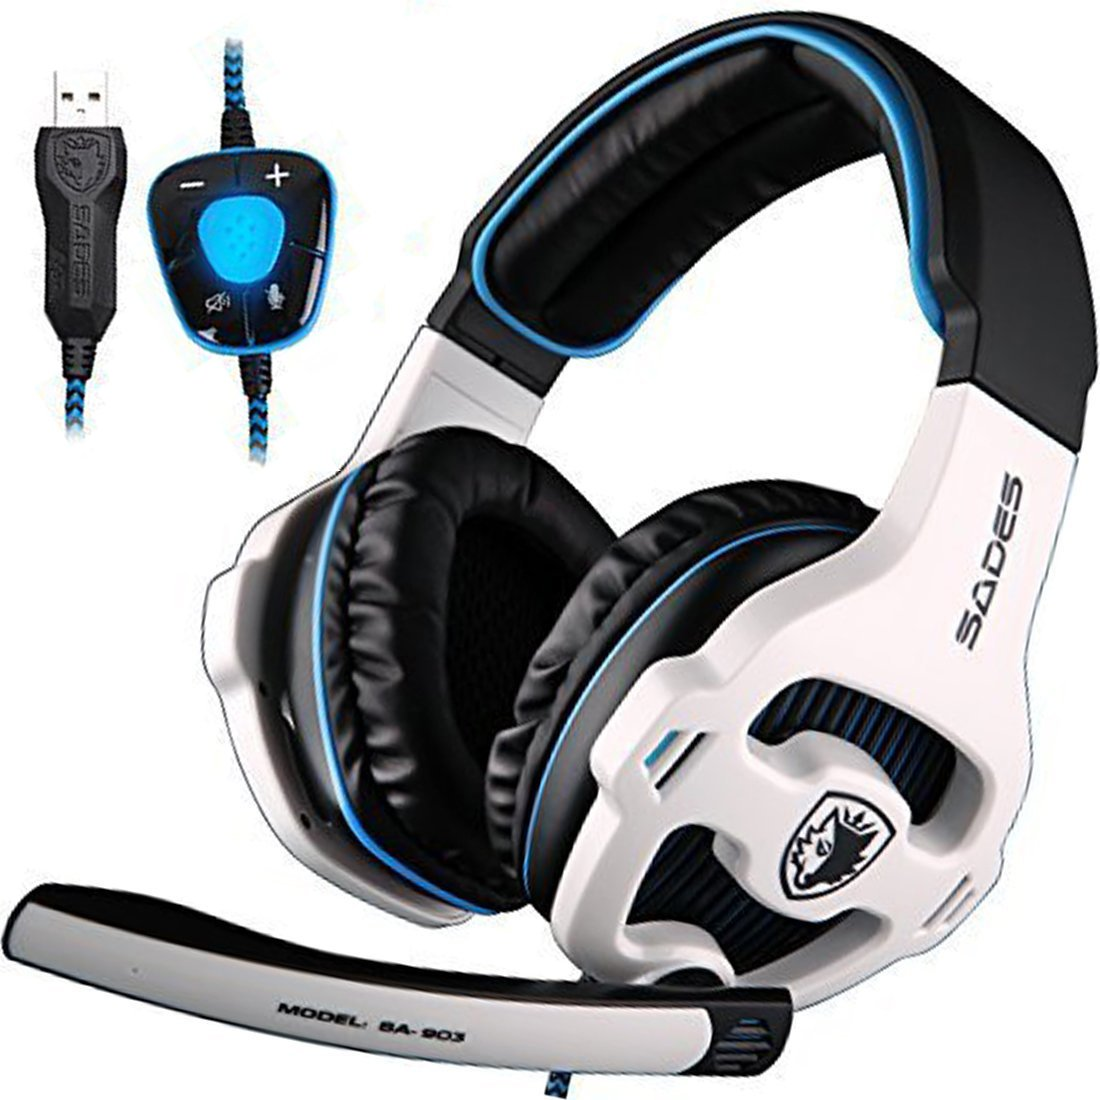 New Updated SADES Spirit Wolf 7.1 Surround Stereo Sound USB Computer Gaming Headset with Microphone,Over-The-Ear Noise Isolating,Breathing LED Light for PC Gamers Black White